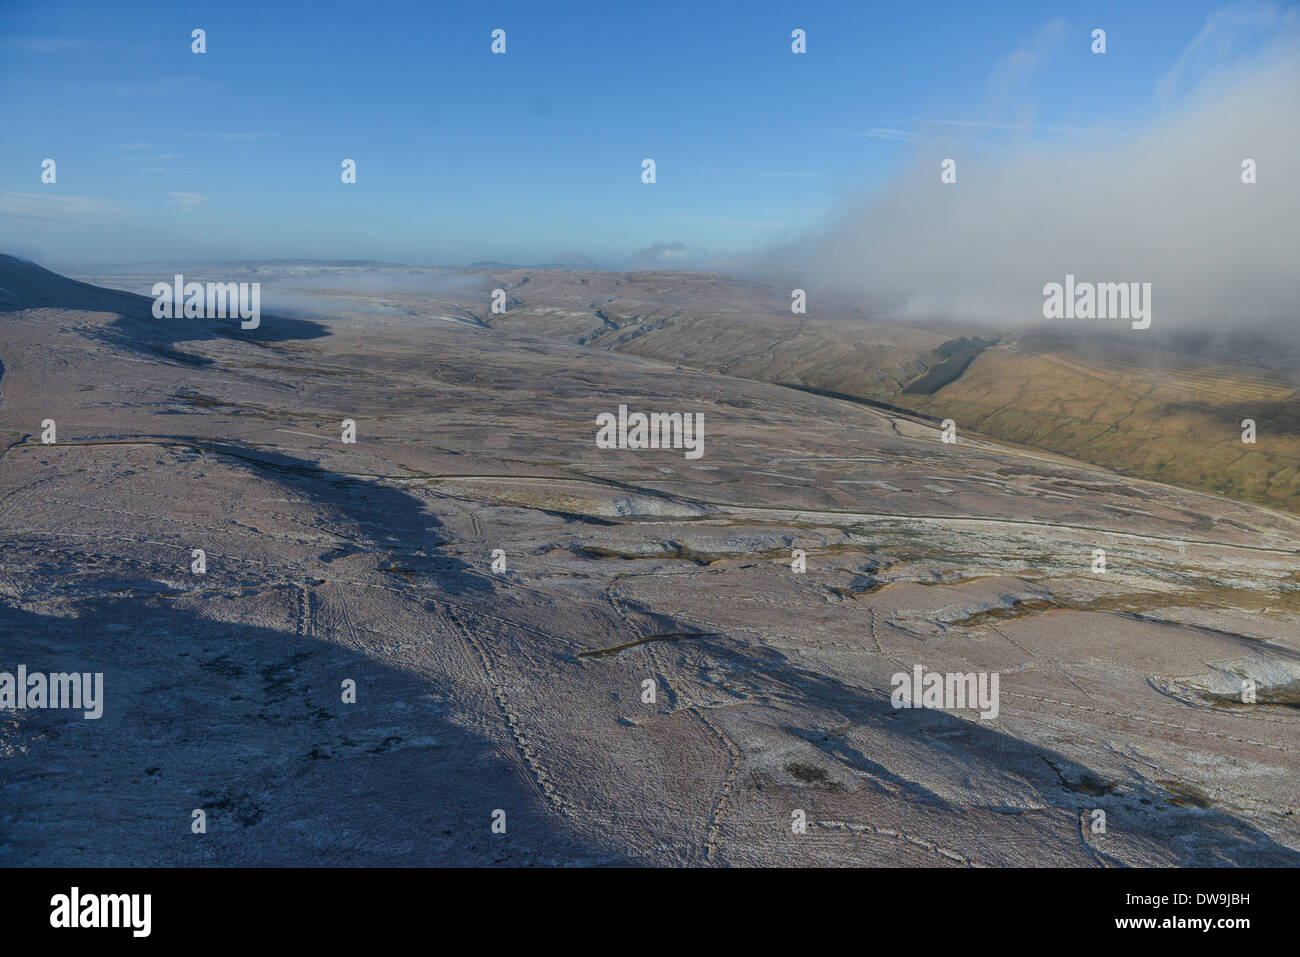 Aerial Photograph showing snow-dusted hilltops in the Yorkshire Dales, North Yorkshire on a sunny Winter's day - Stock Image